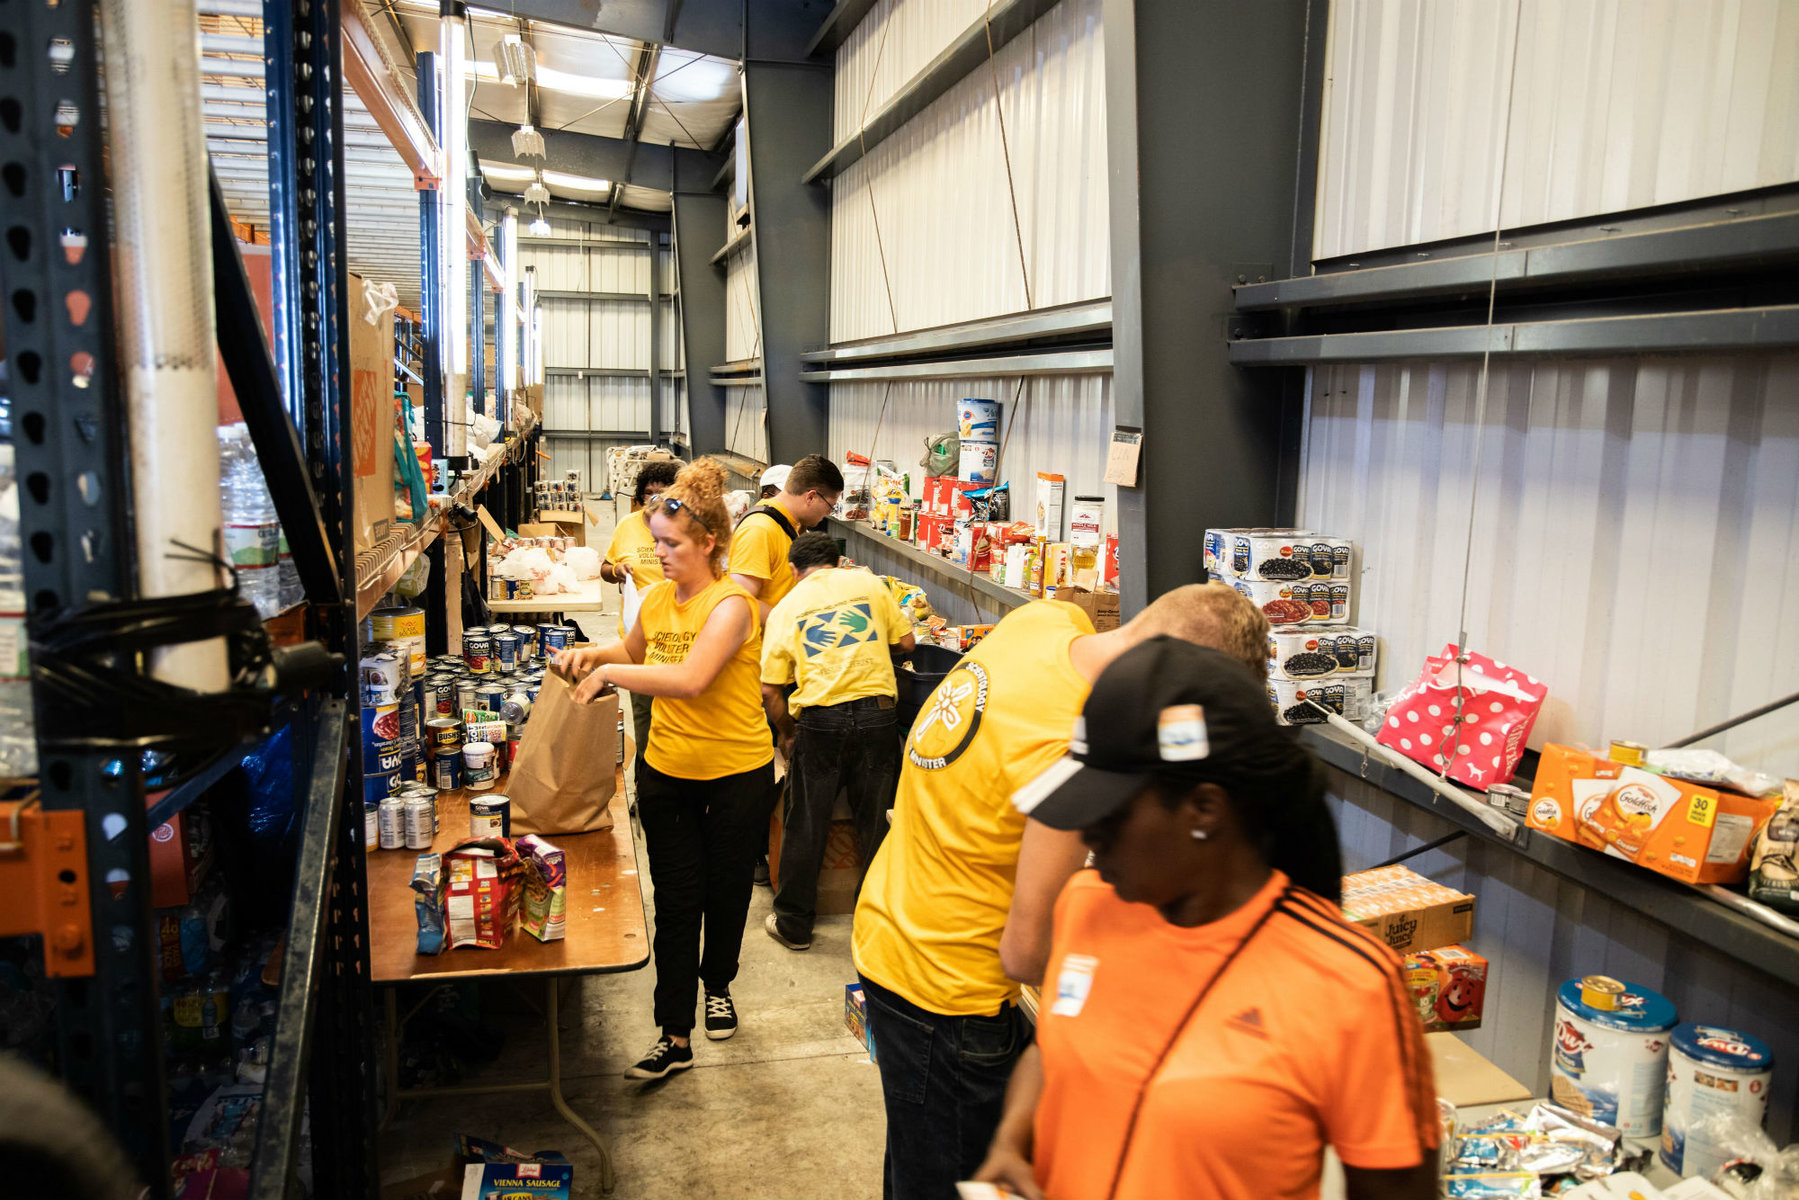 Volunteer Ministers helped organize the warehouse to ensure the supplies were ready to distribute.